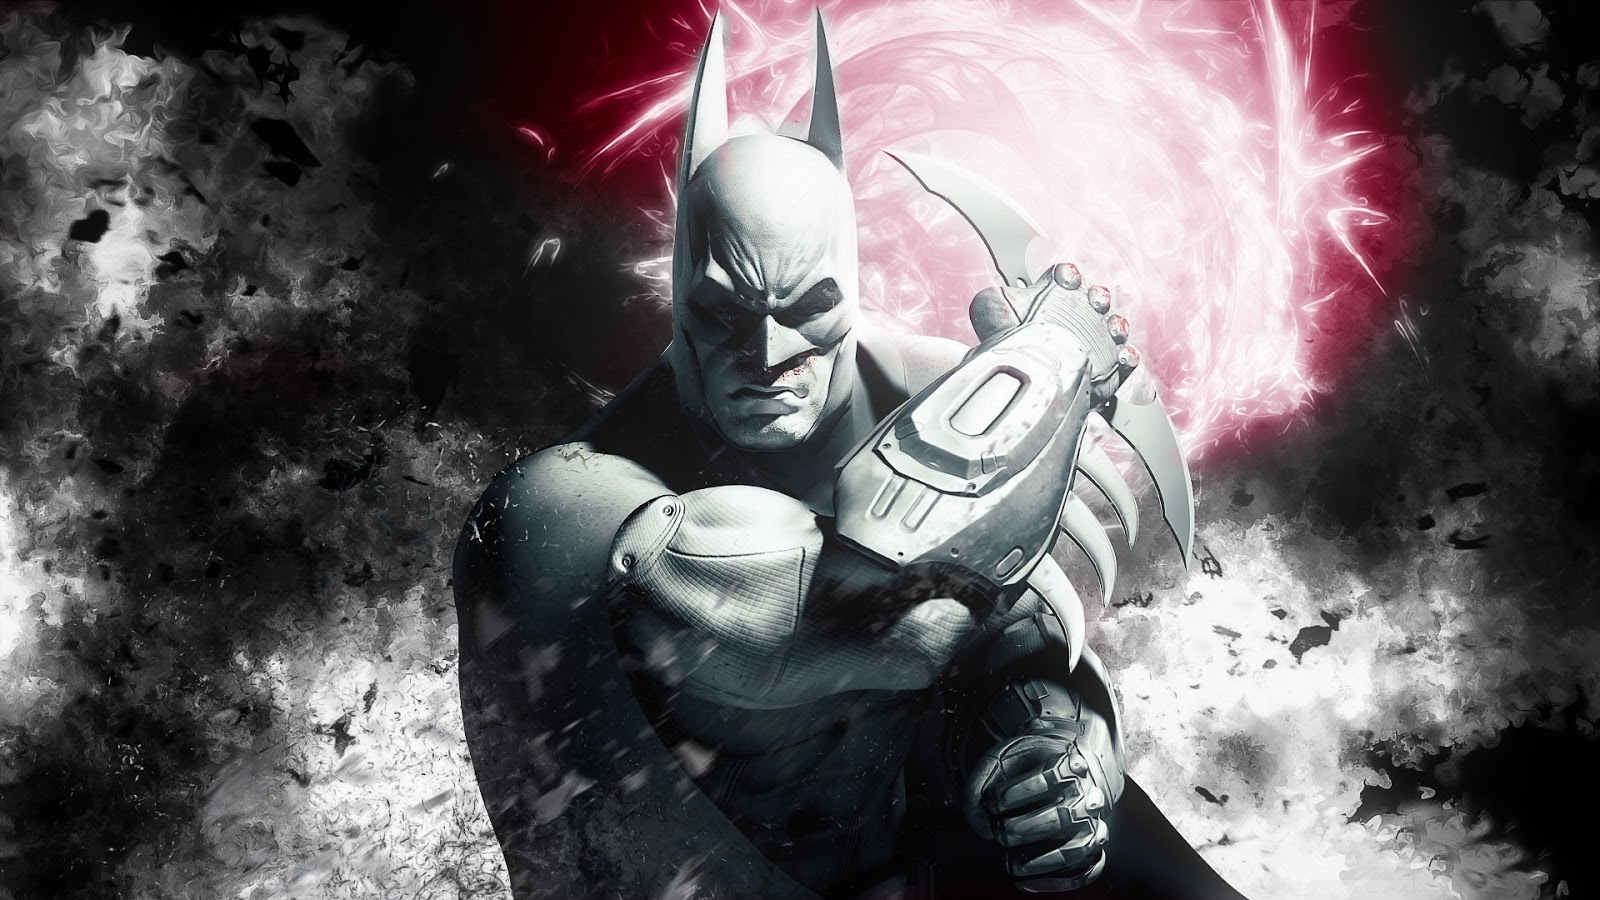 batman new hd wallpapers 2013 all about hd wallpapers